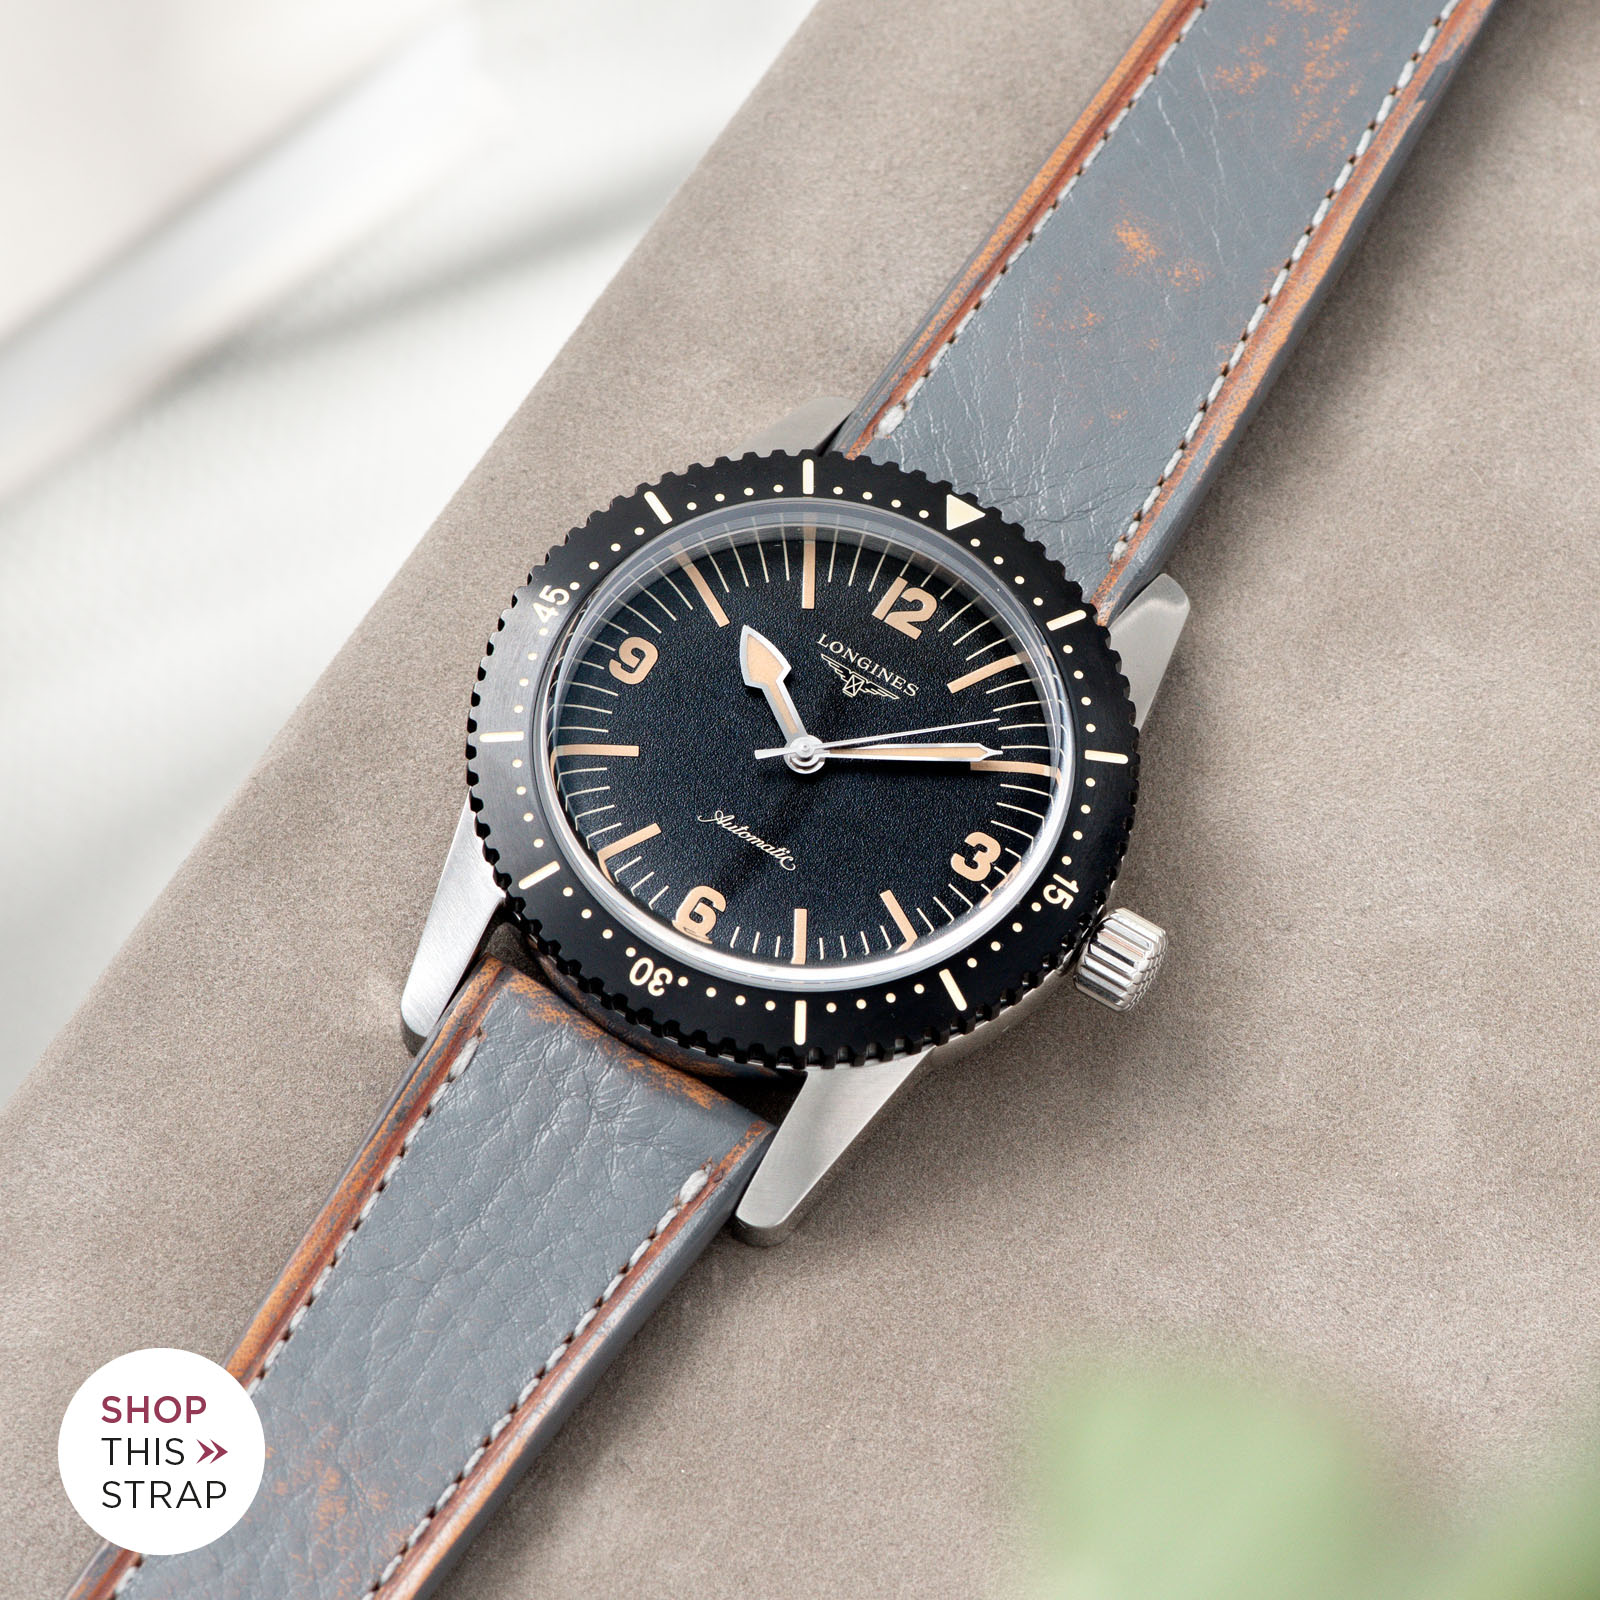 Bulang and Sons_Strap Guide_Longines Skin Diver_Denim Blue Retro Leather Watch Strap